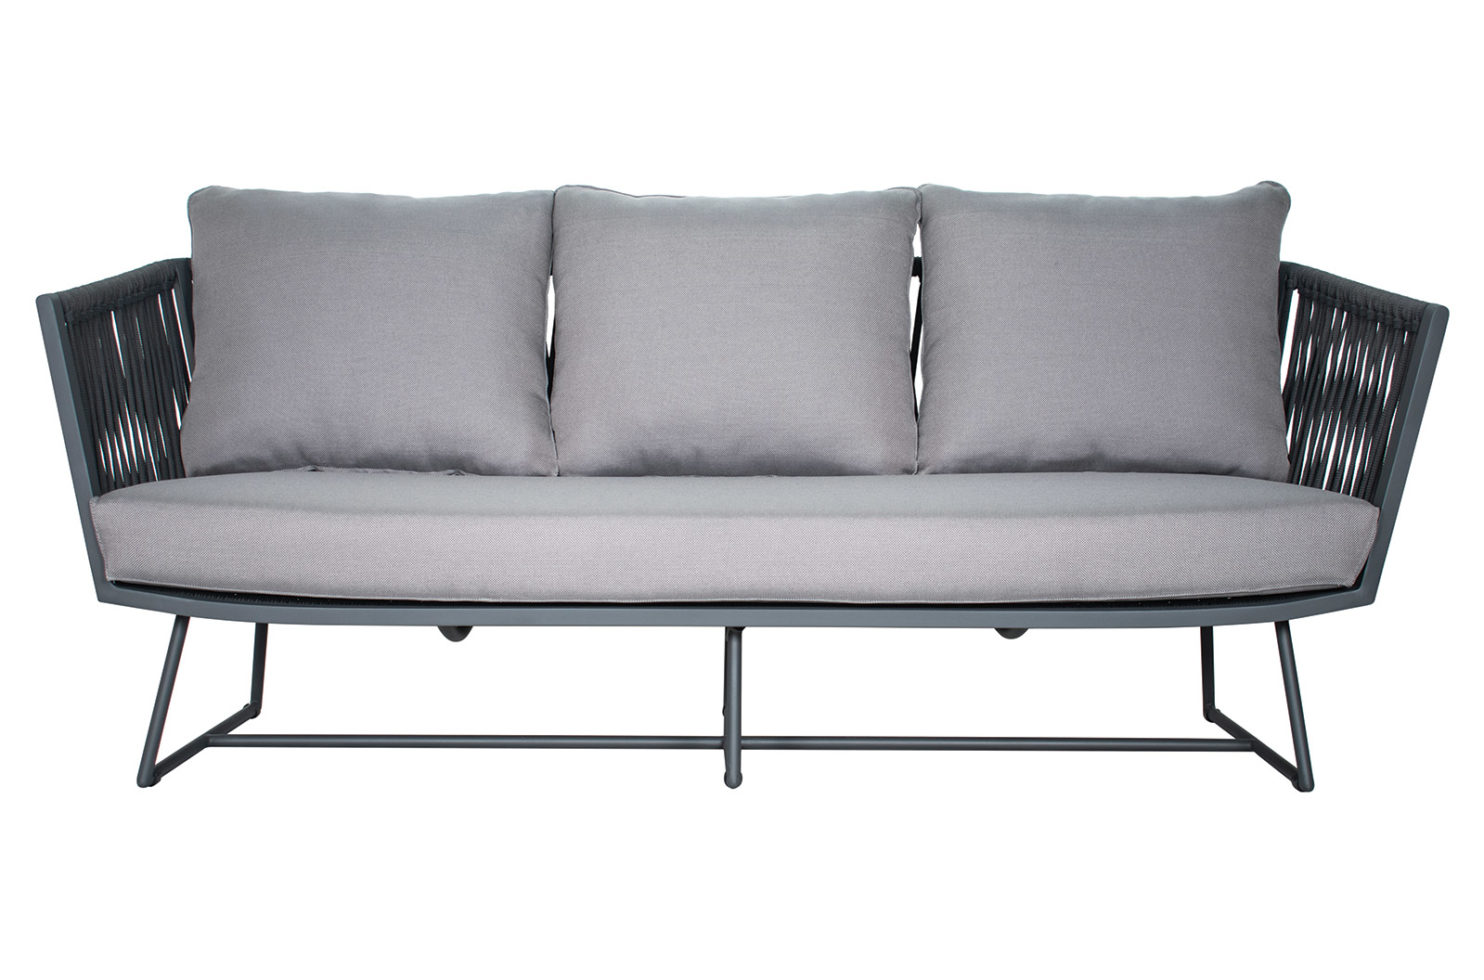 Archipelago orion sofa 620FT081P2DGP 1 front